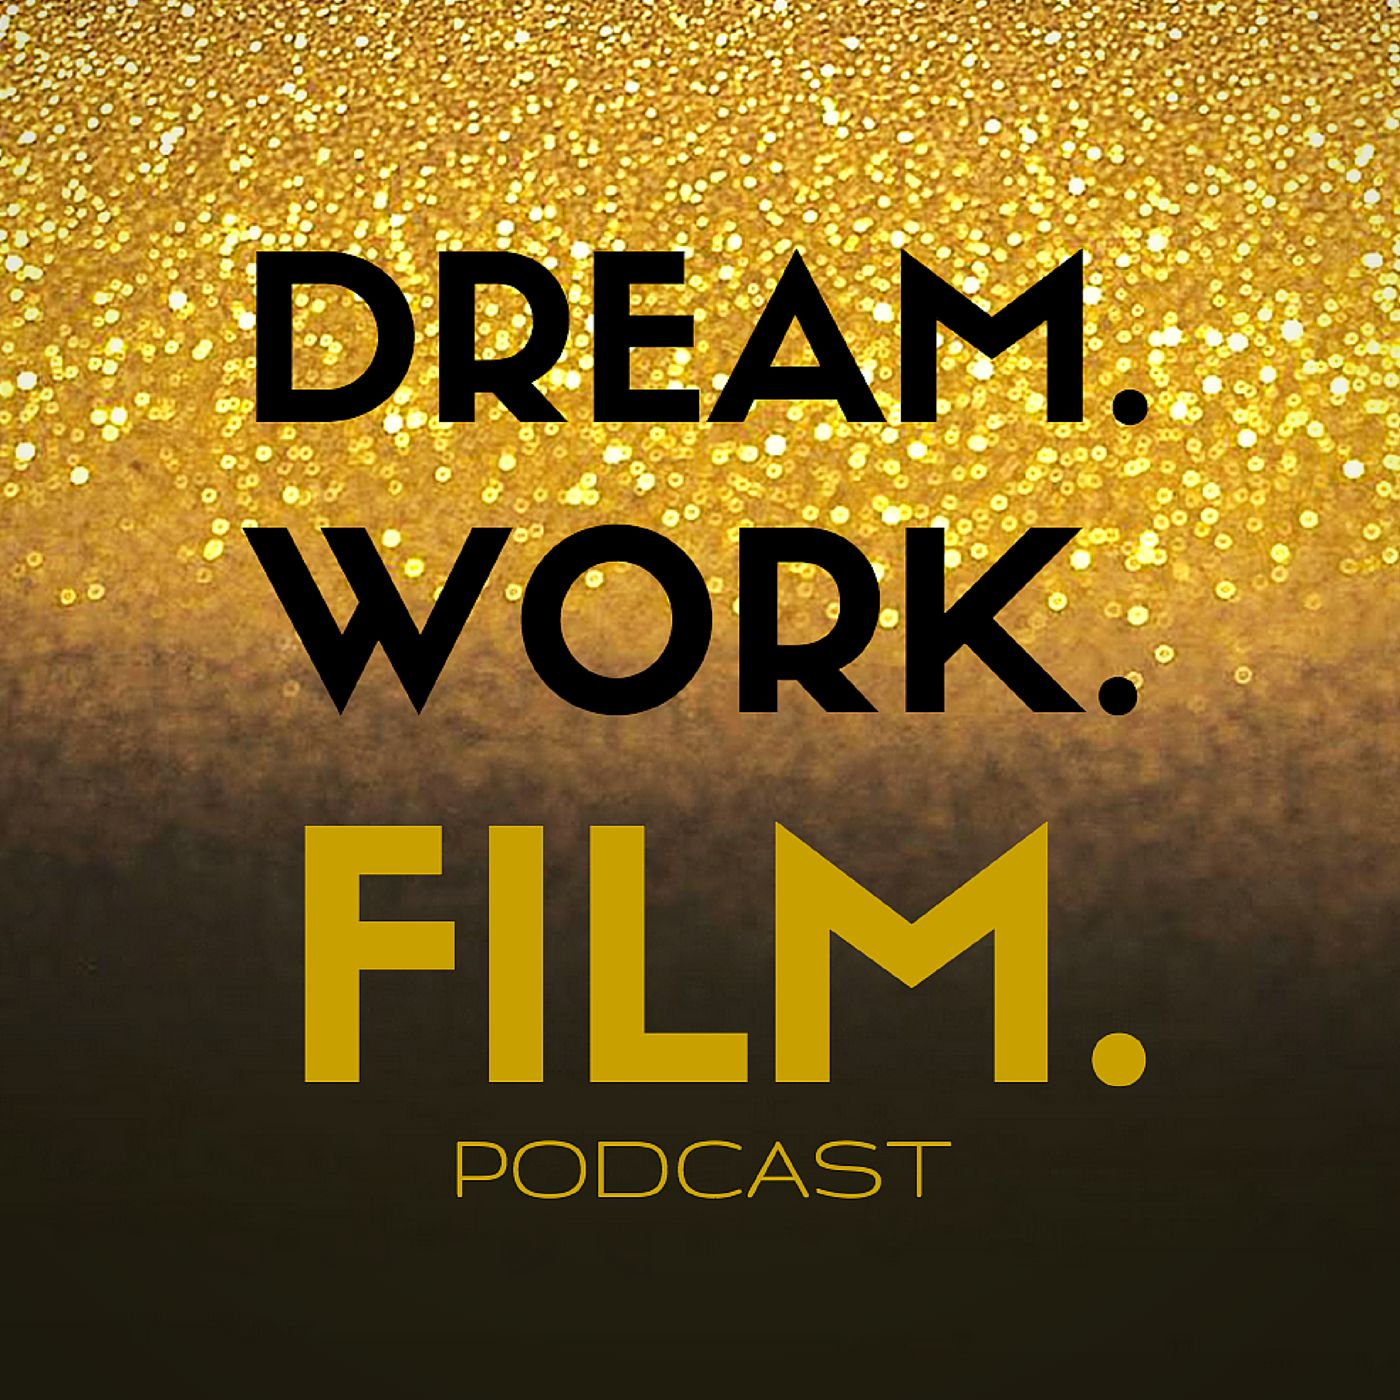 Dream Work Film Podcast